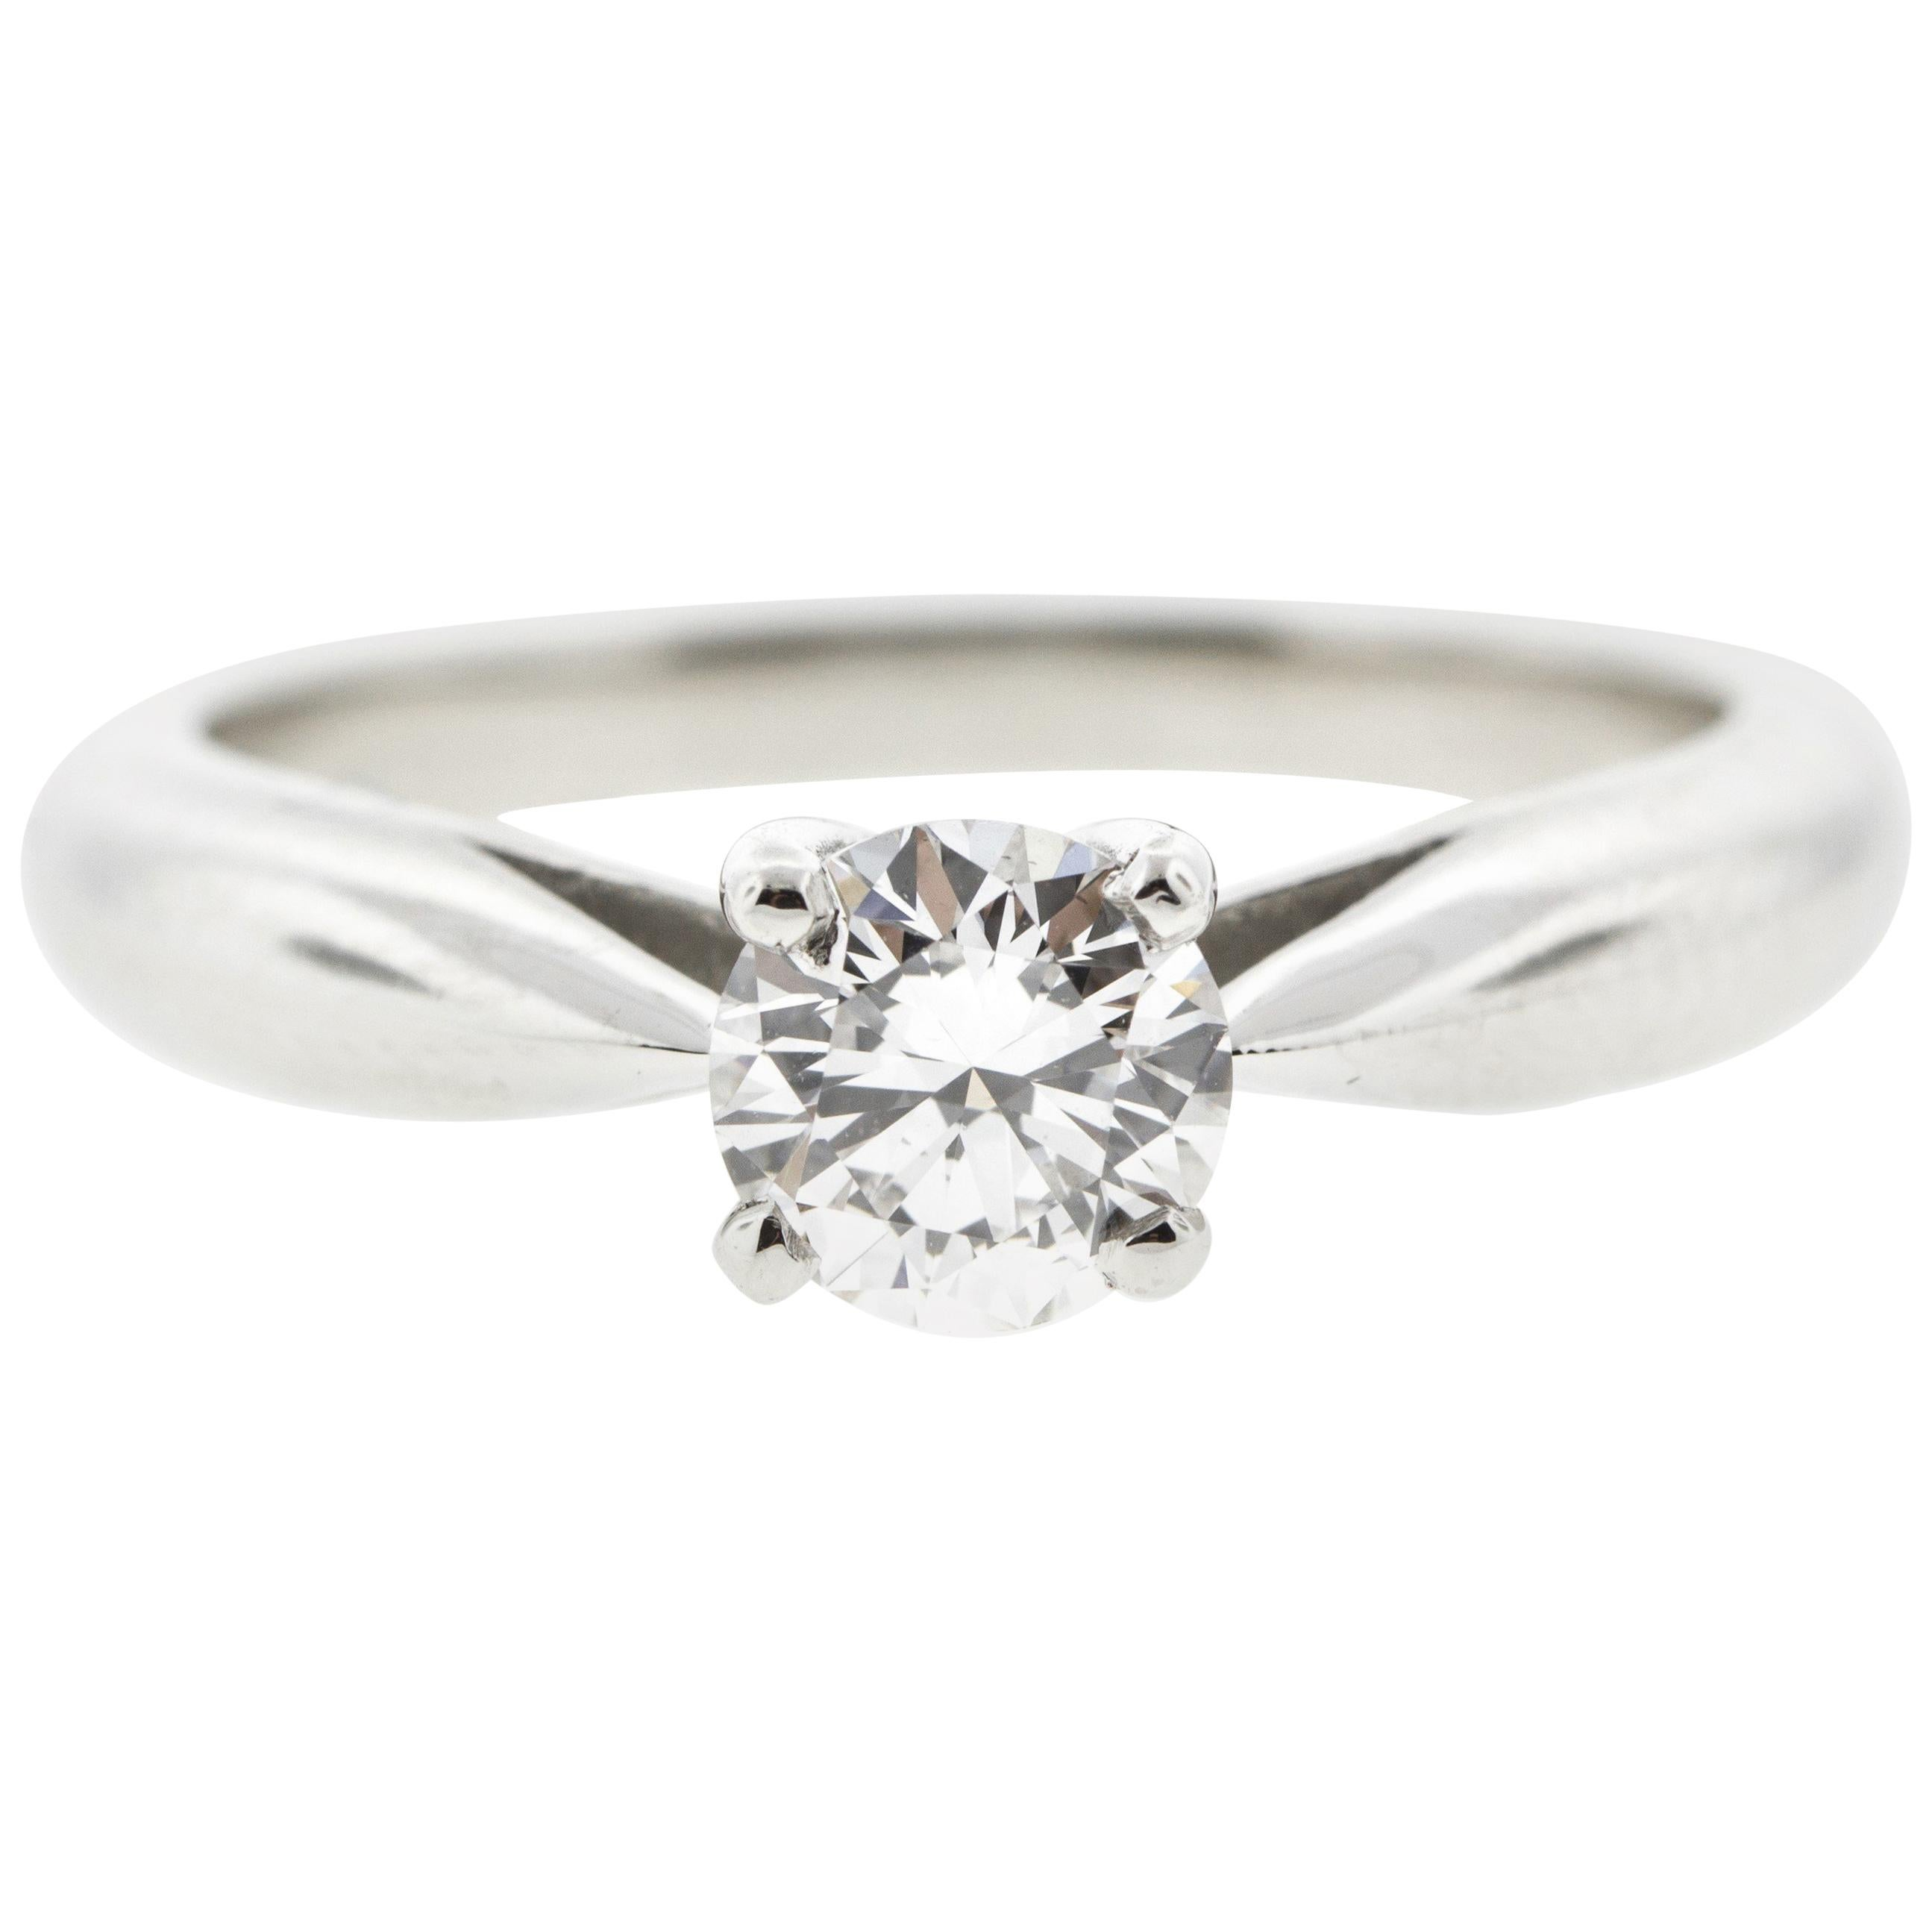 .75 D Color Internally Flawless GIA Reverse Taper Diamond Engagement Ring